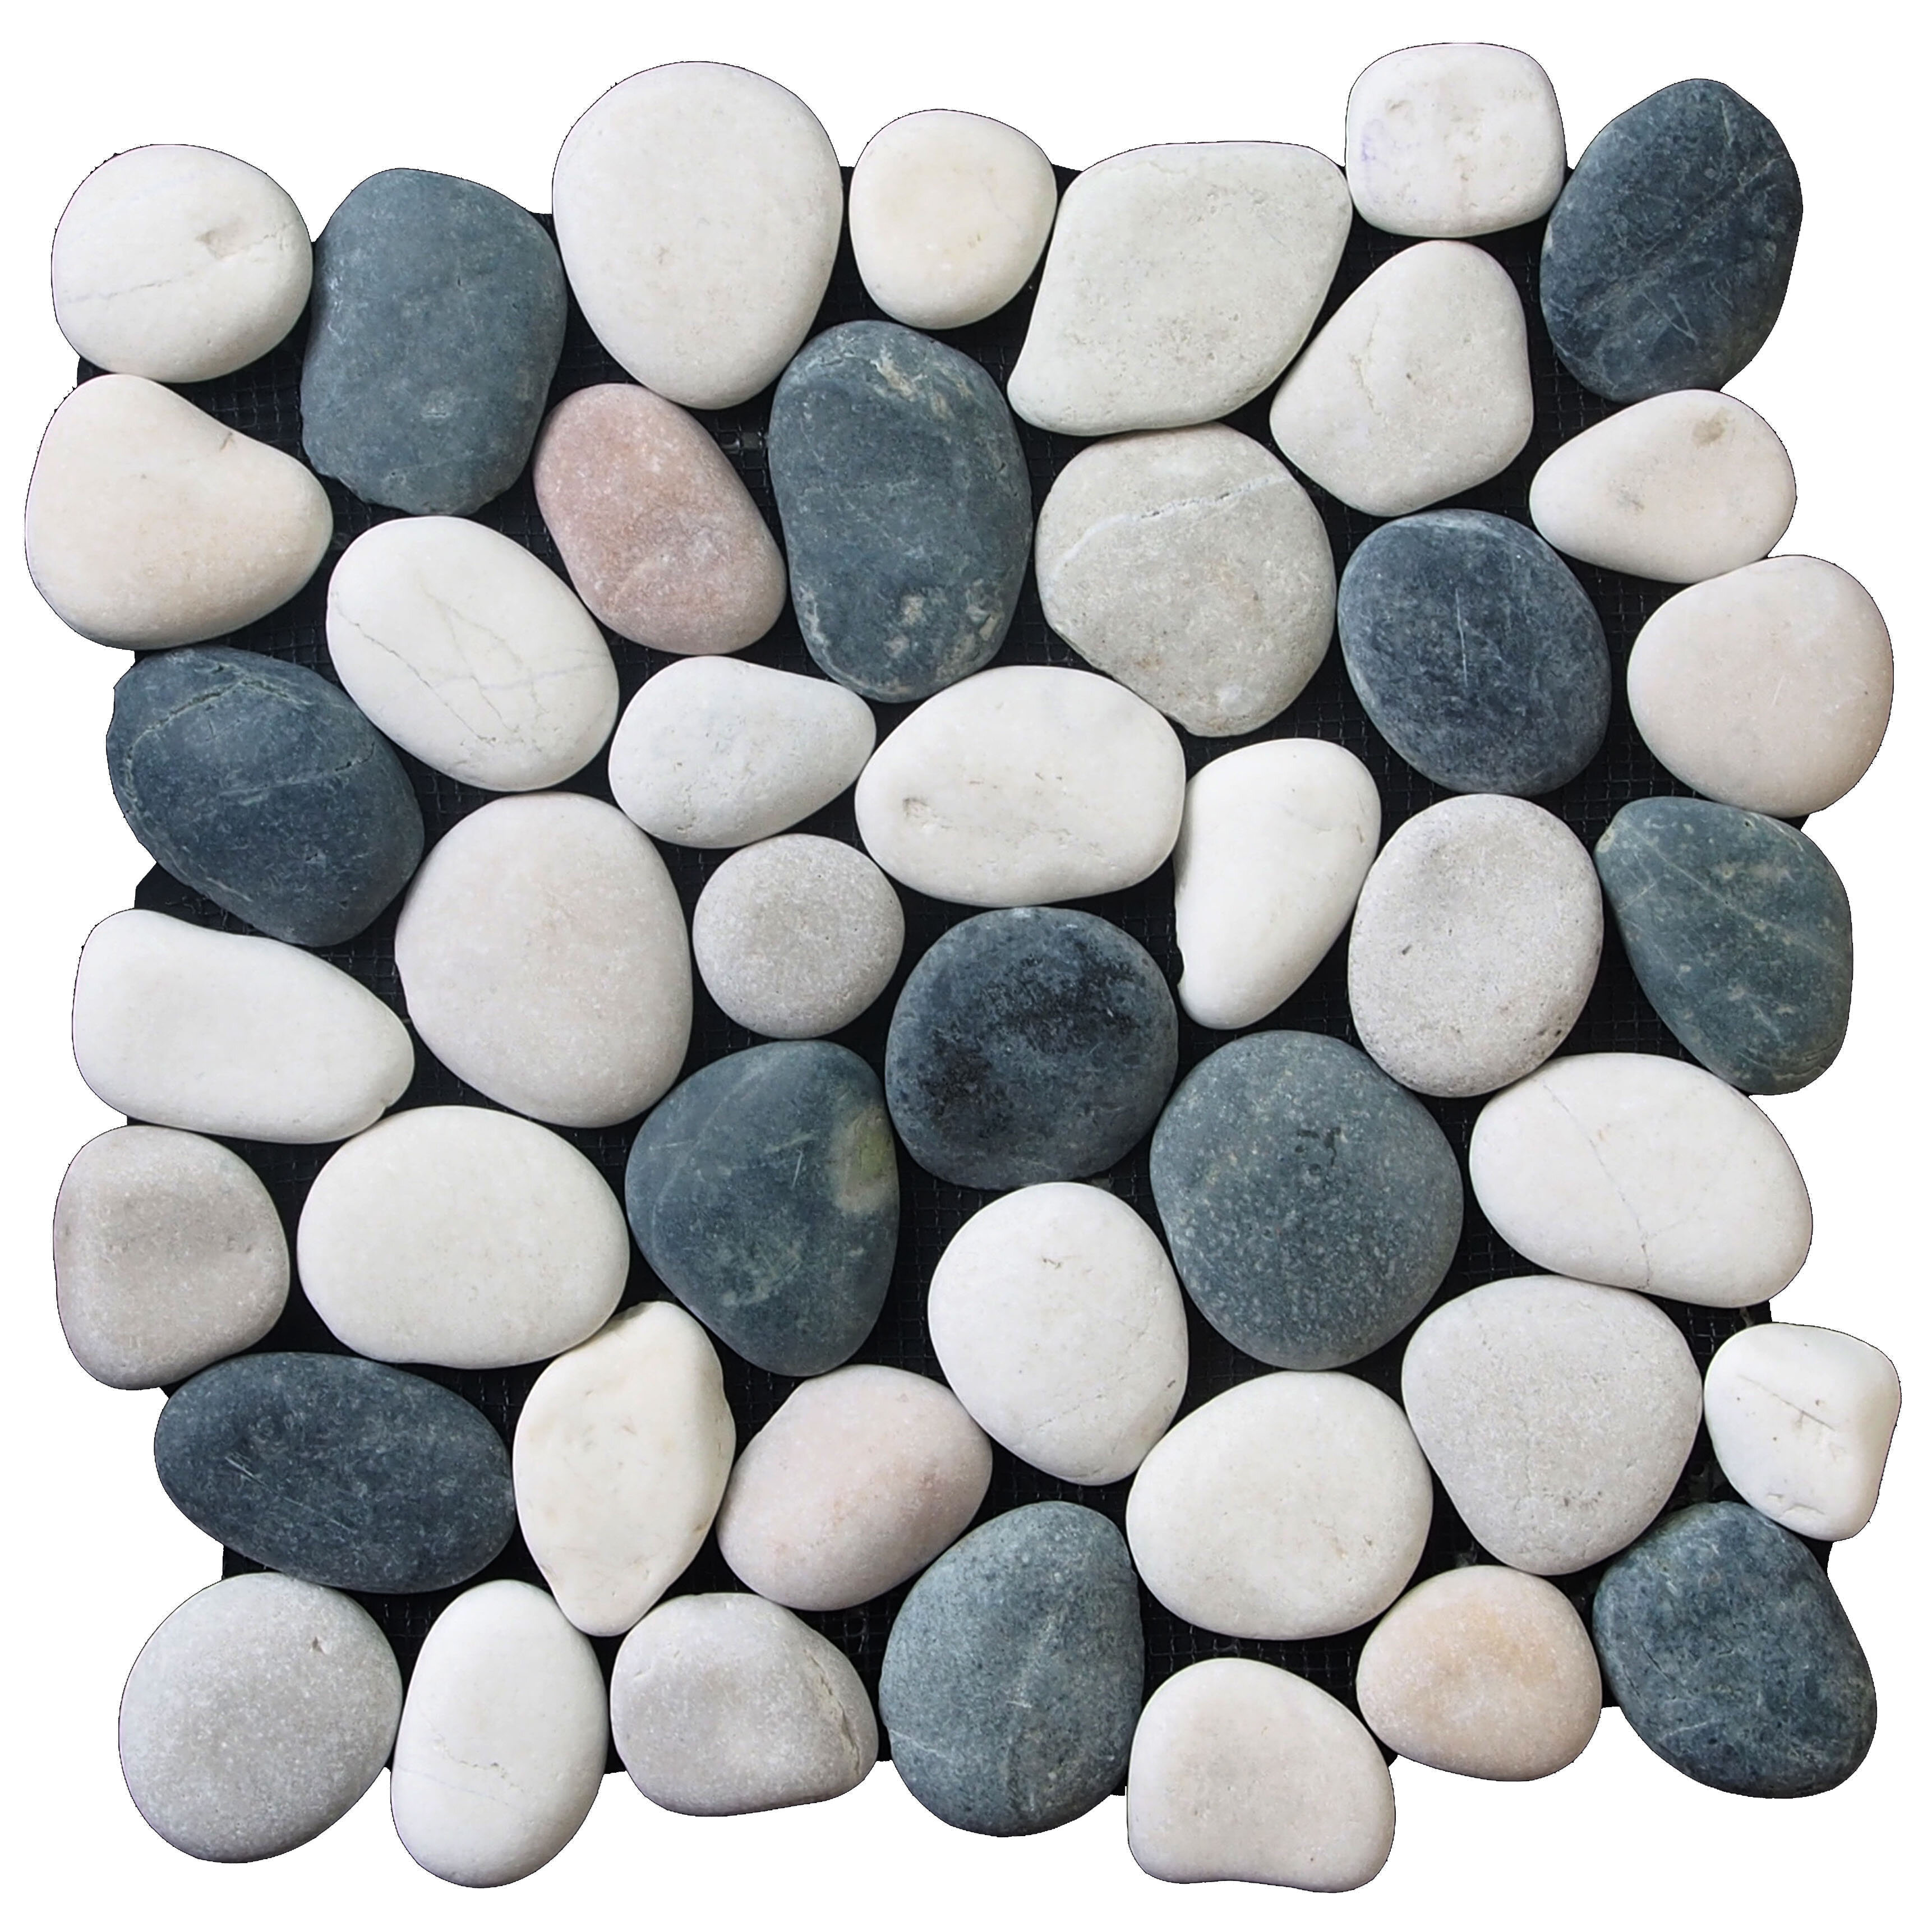 Pebble Tile Clic Random Sized Natural Stone In Black White Reviews Wayfair